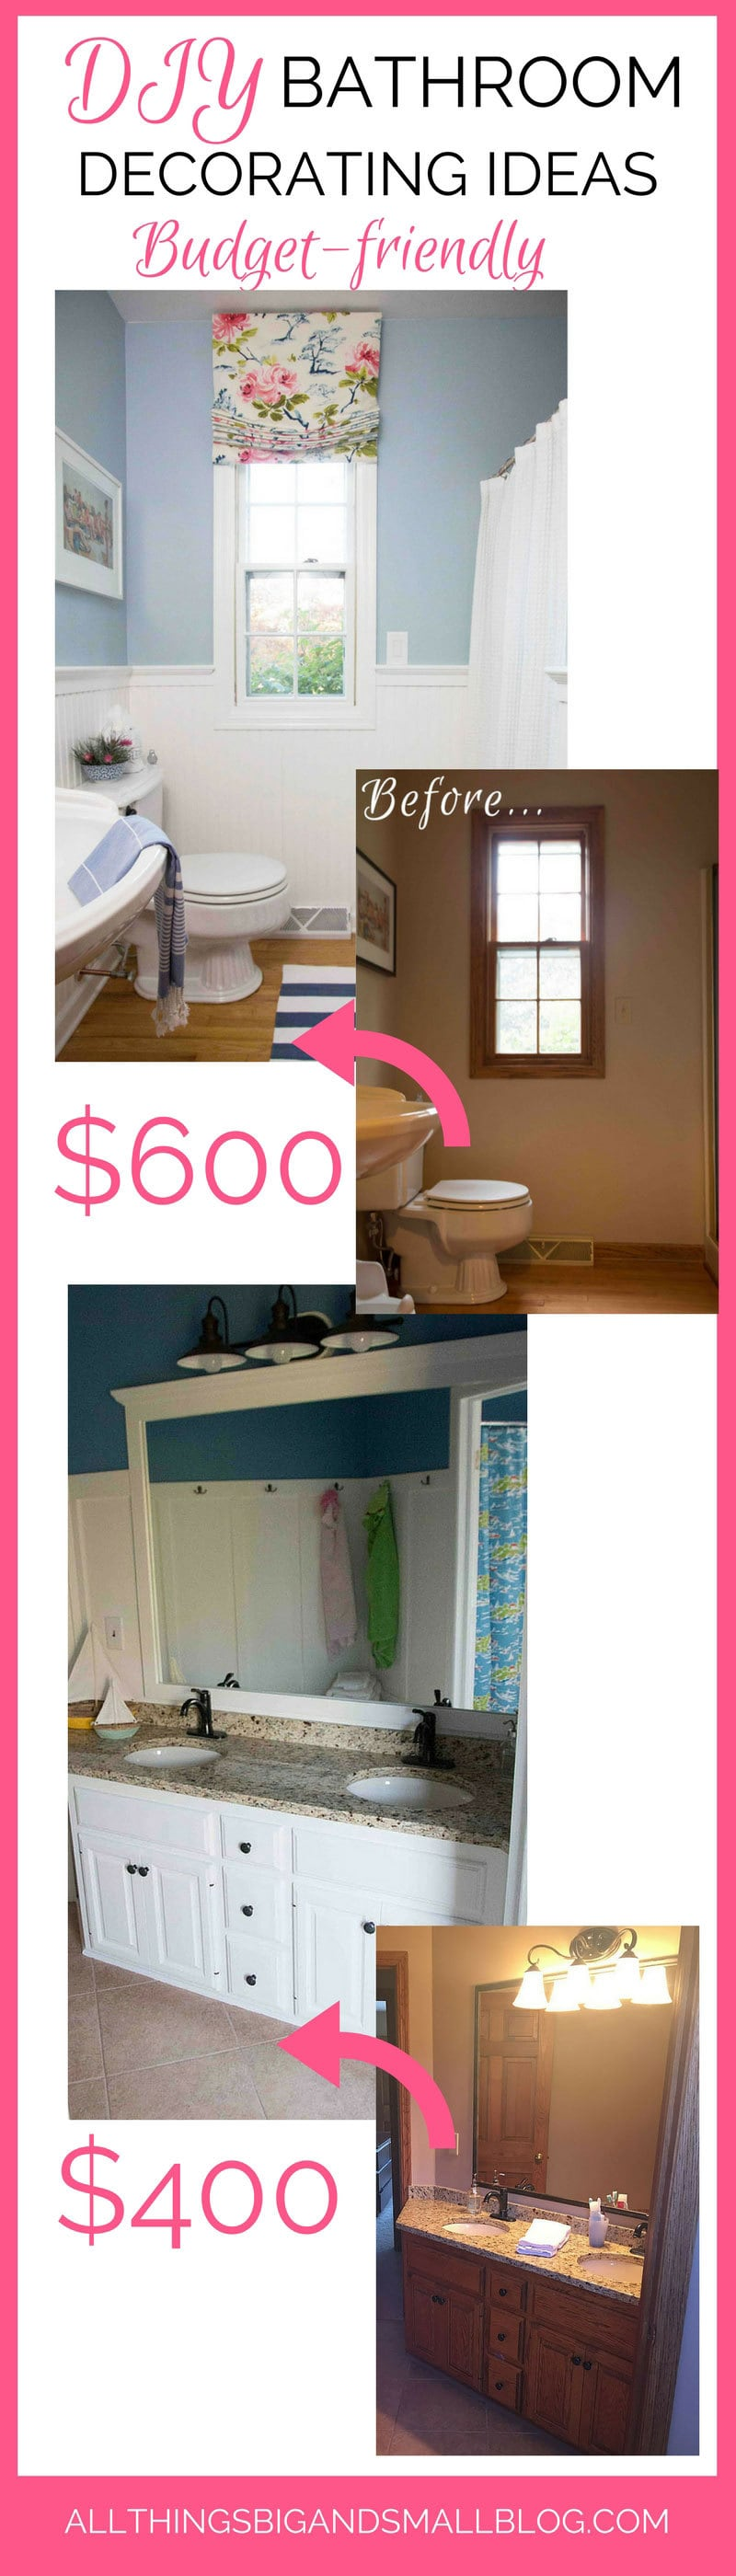 Bathroom Decorating Ideas | Budget Friendly Bathroom | DIY Bathroom Remodel | ALL THINGS BIG AND SMALL